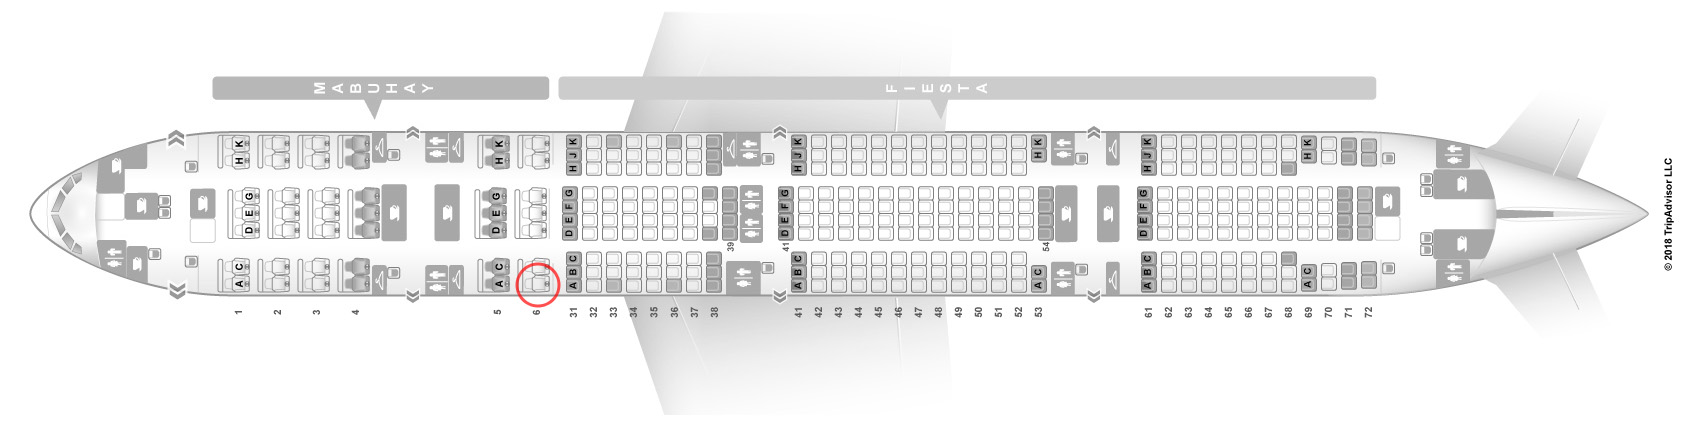 Philippine Airlines 777-300ER seat map